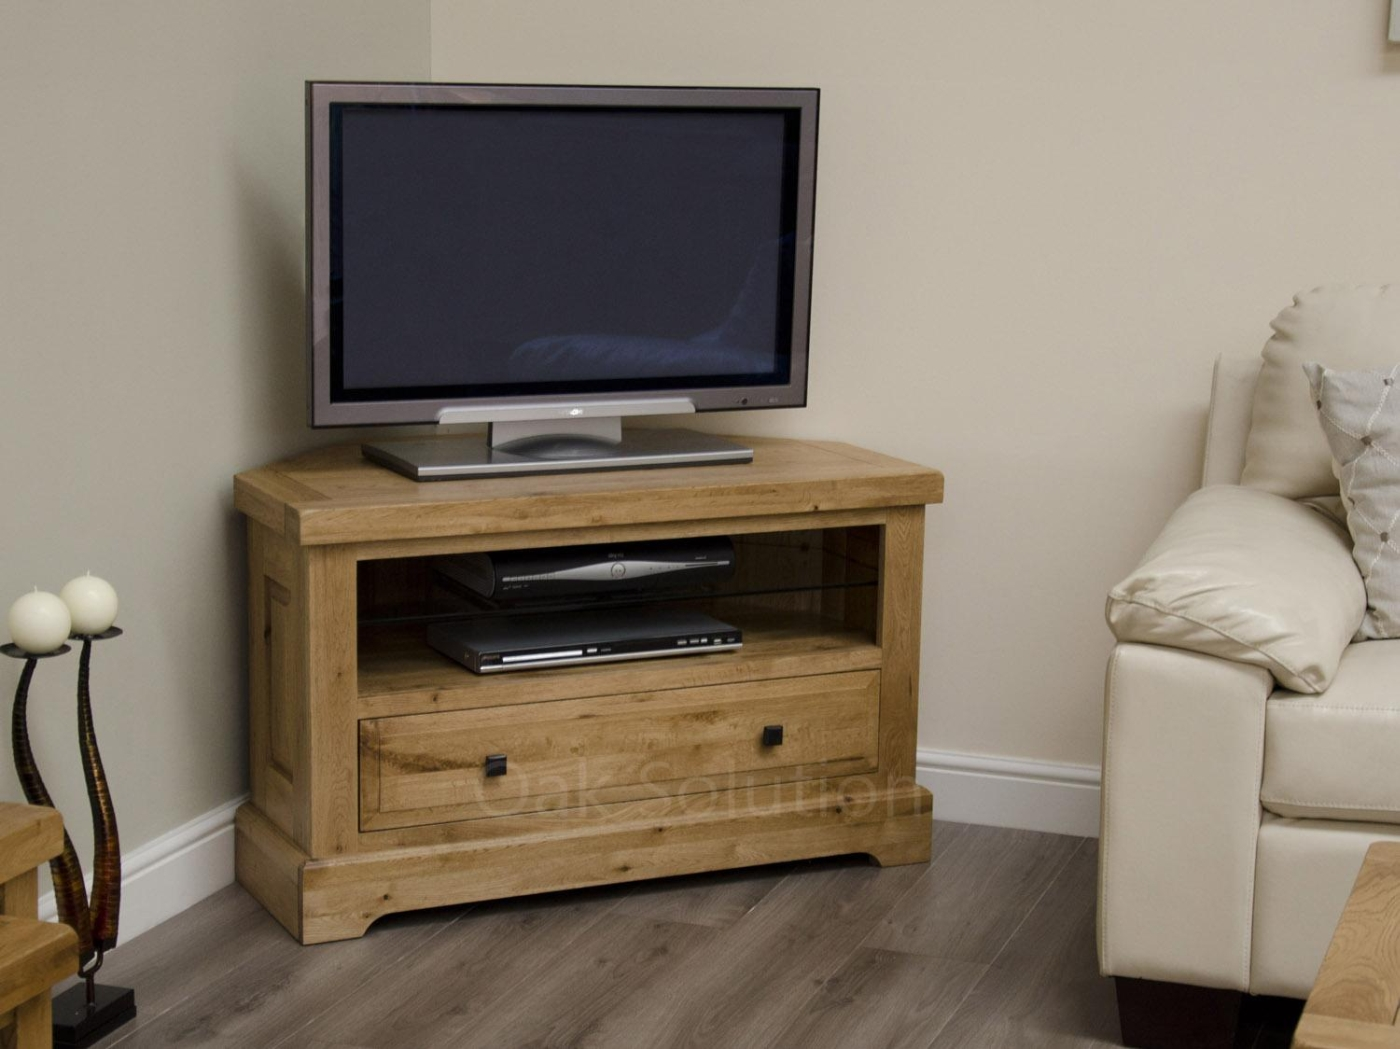 Regent Solid Oak Furniture Living Room Corner Television Cabinet Stand Unit